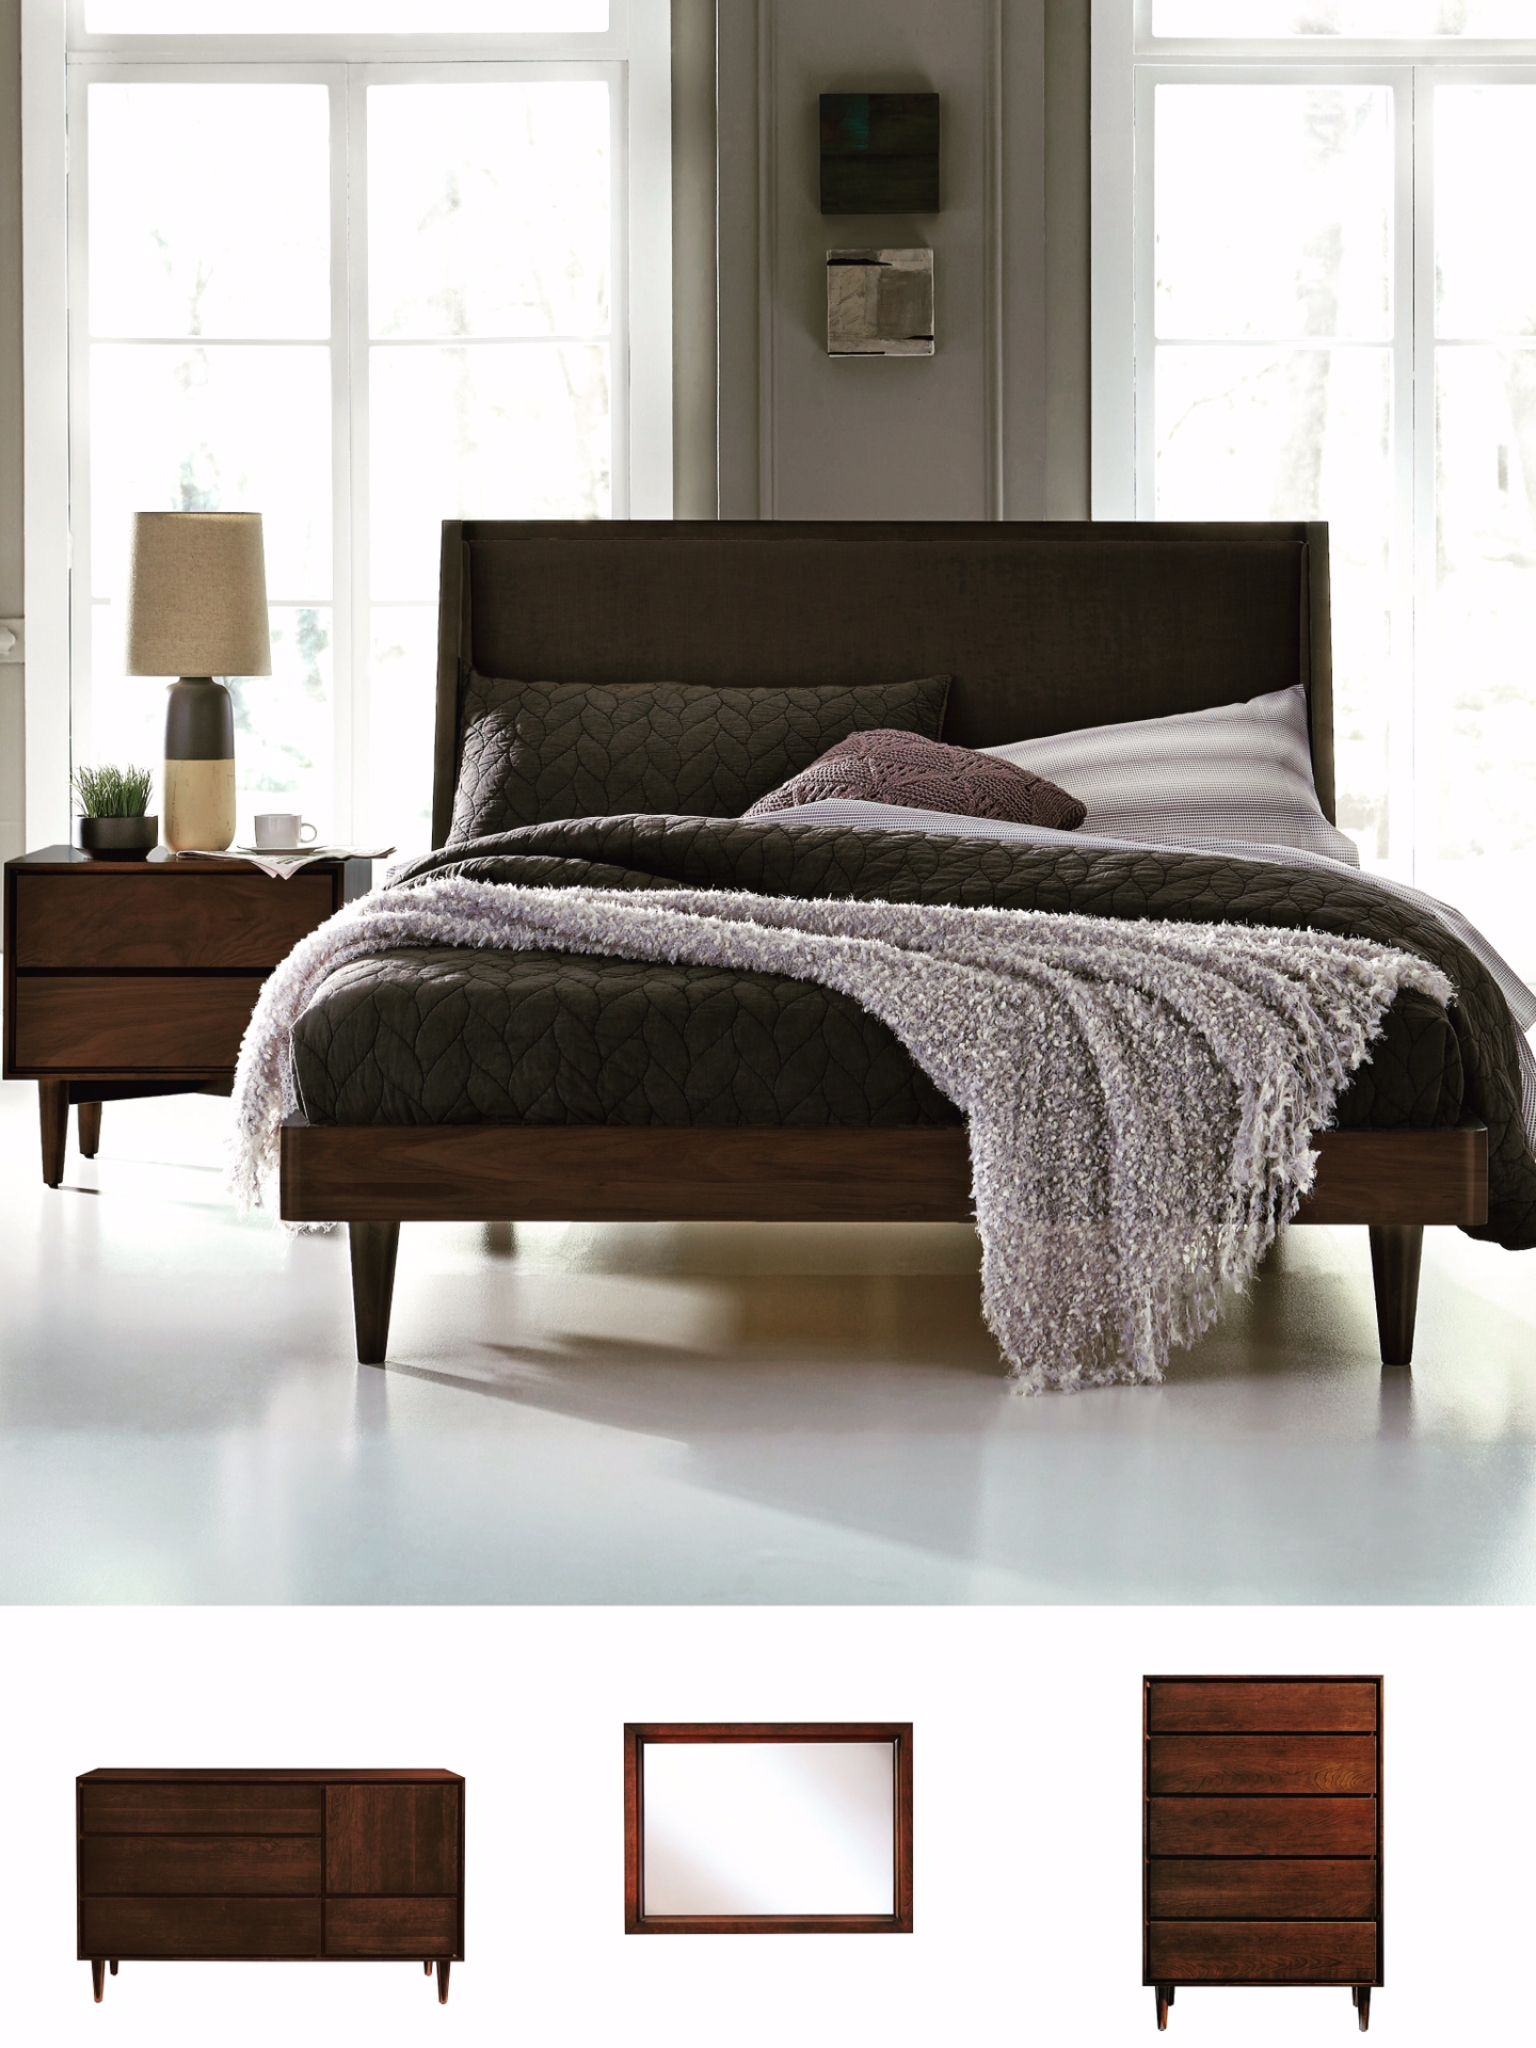 Jensen bedroom in cherrywood by west bros furniture made in canada